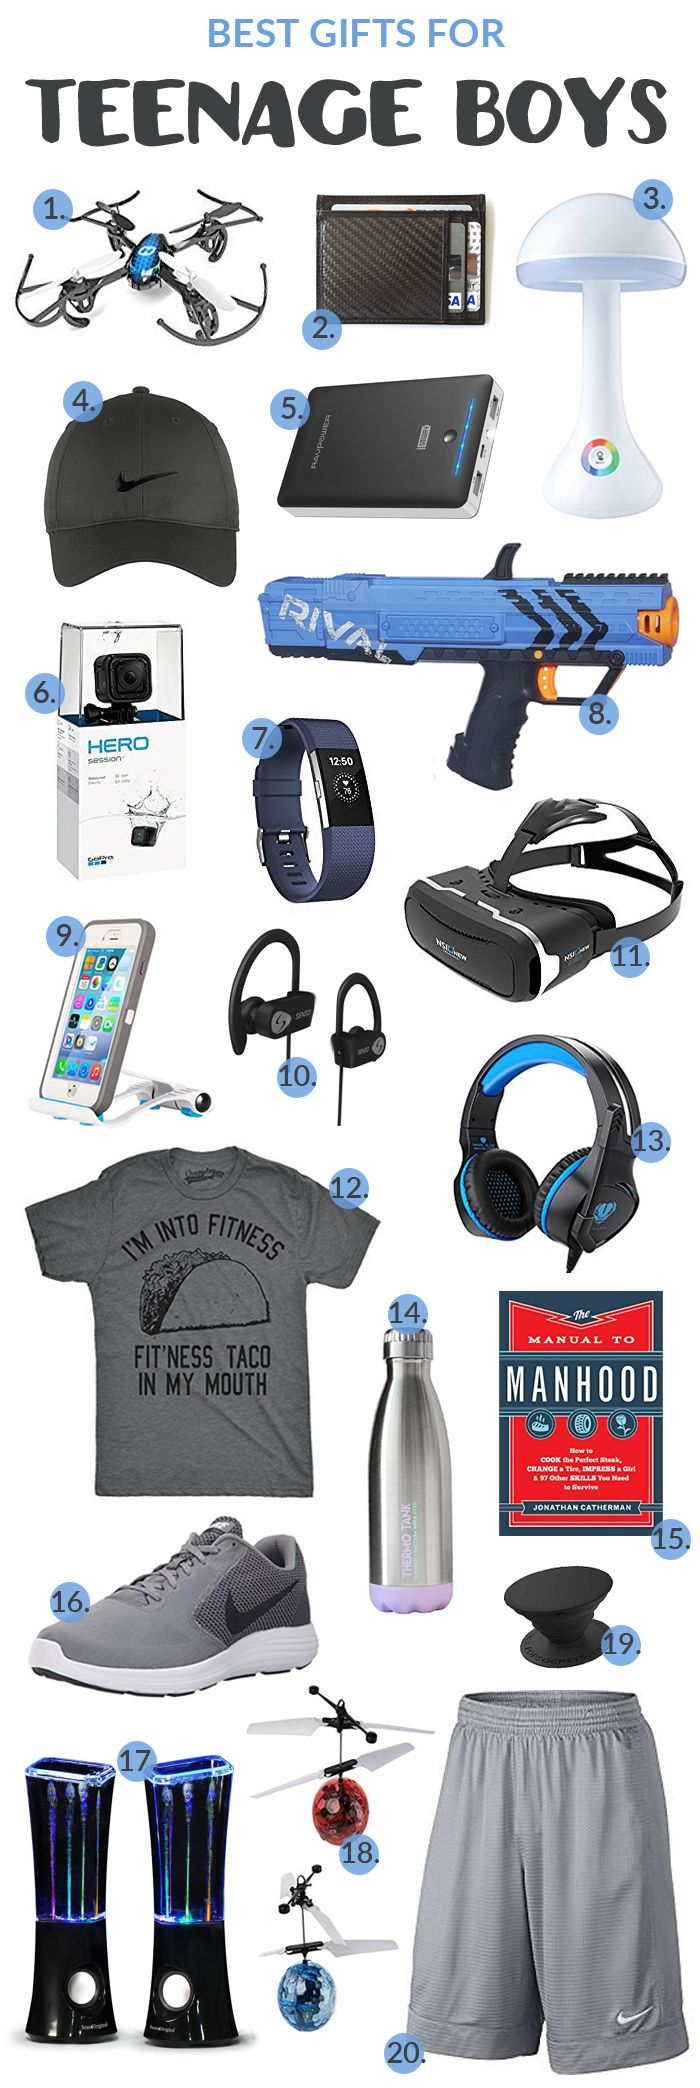 Best Gifts for Teenage Boys Christmas gifts for boys